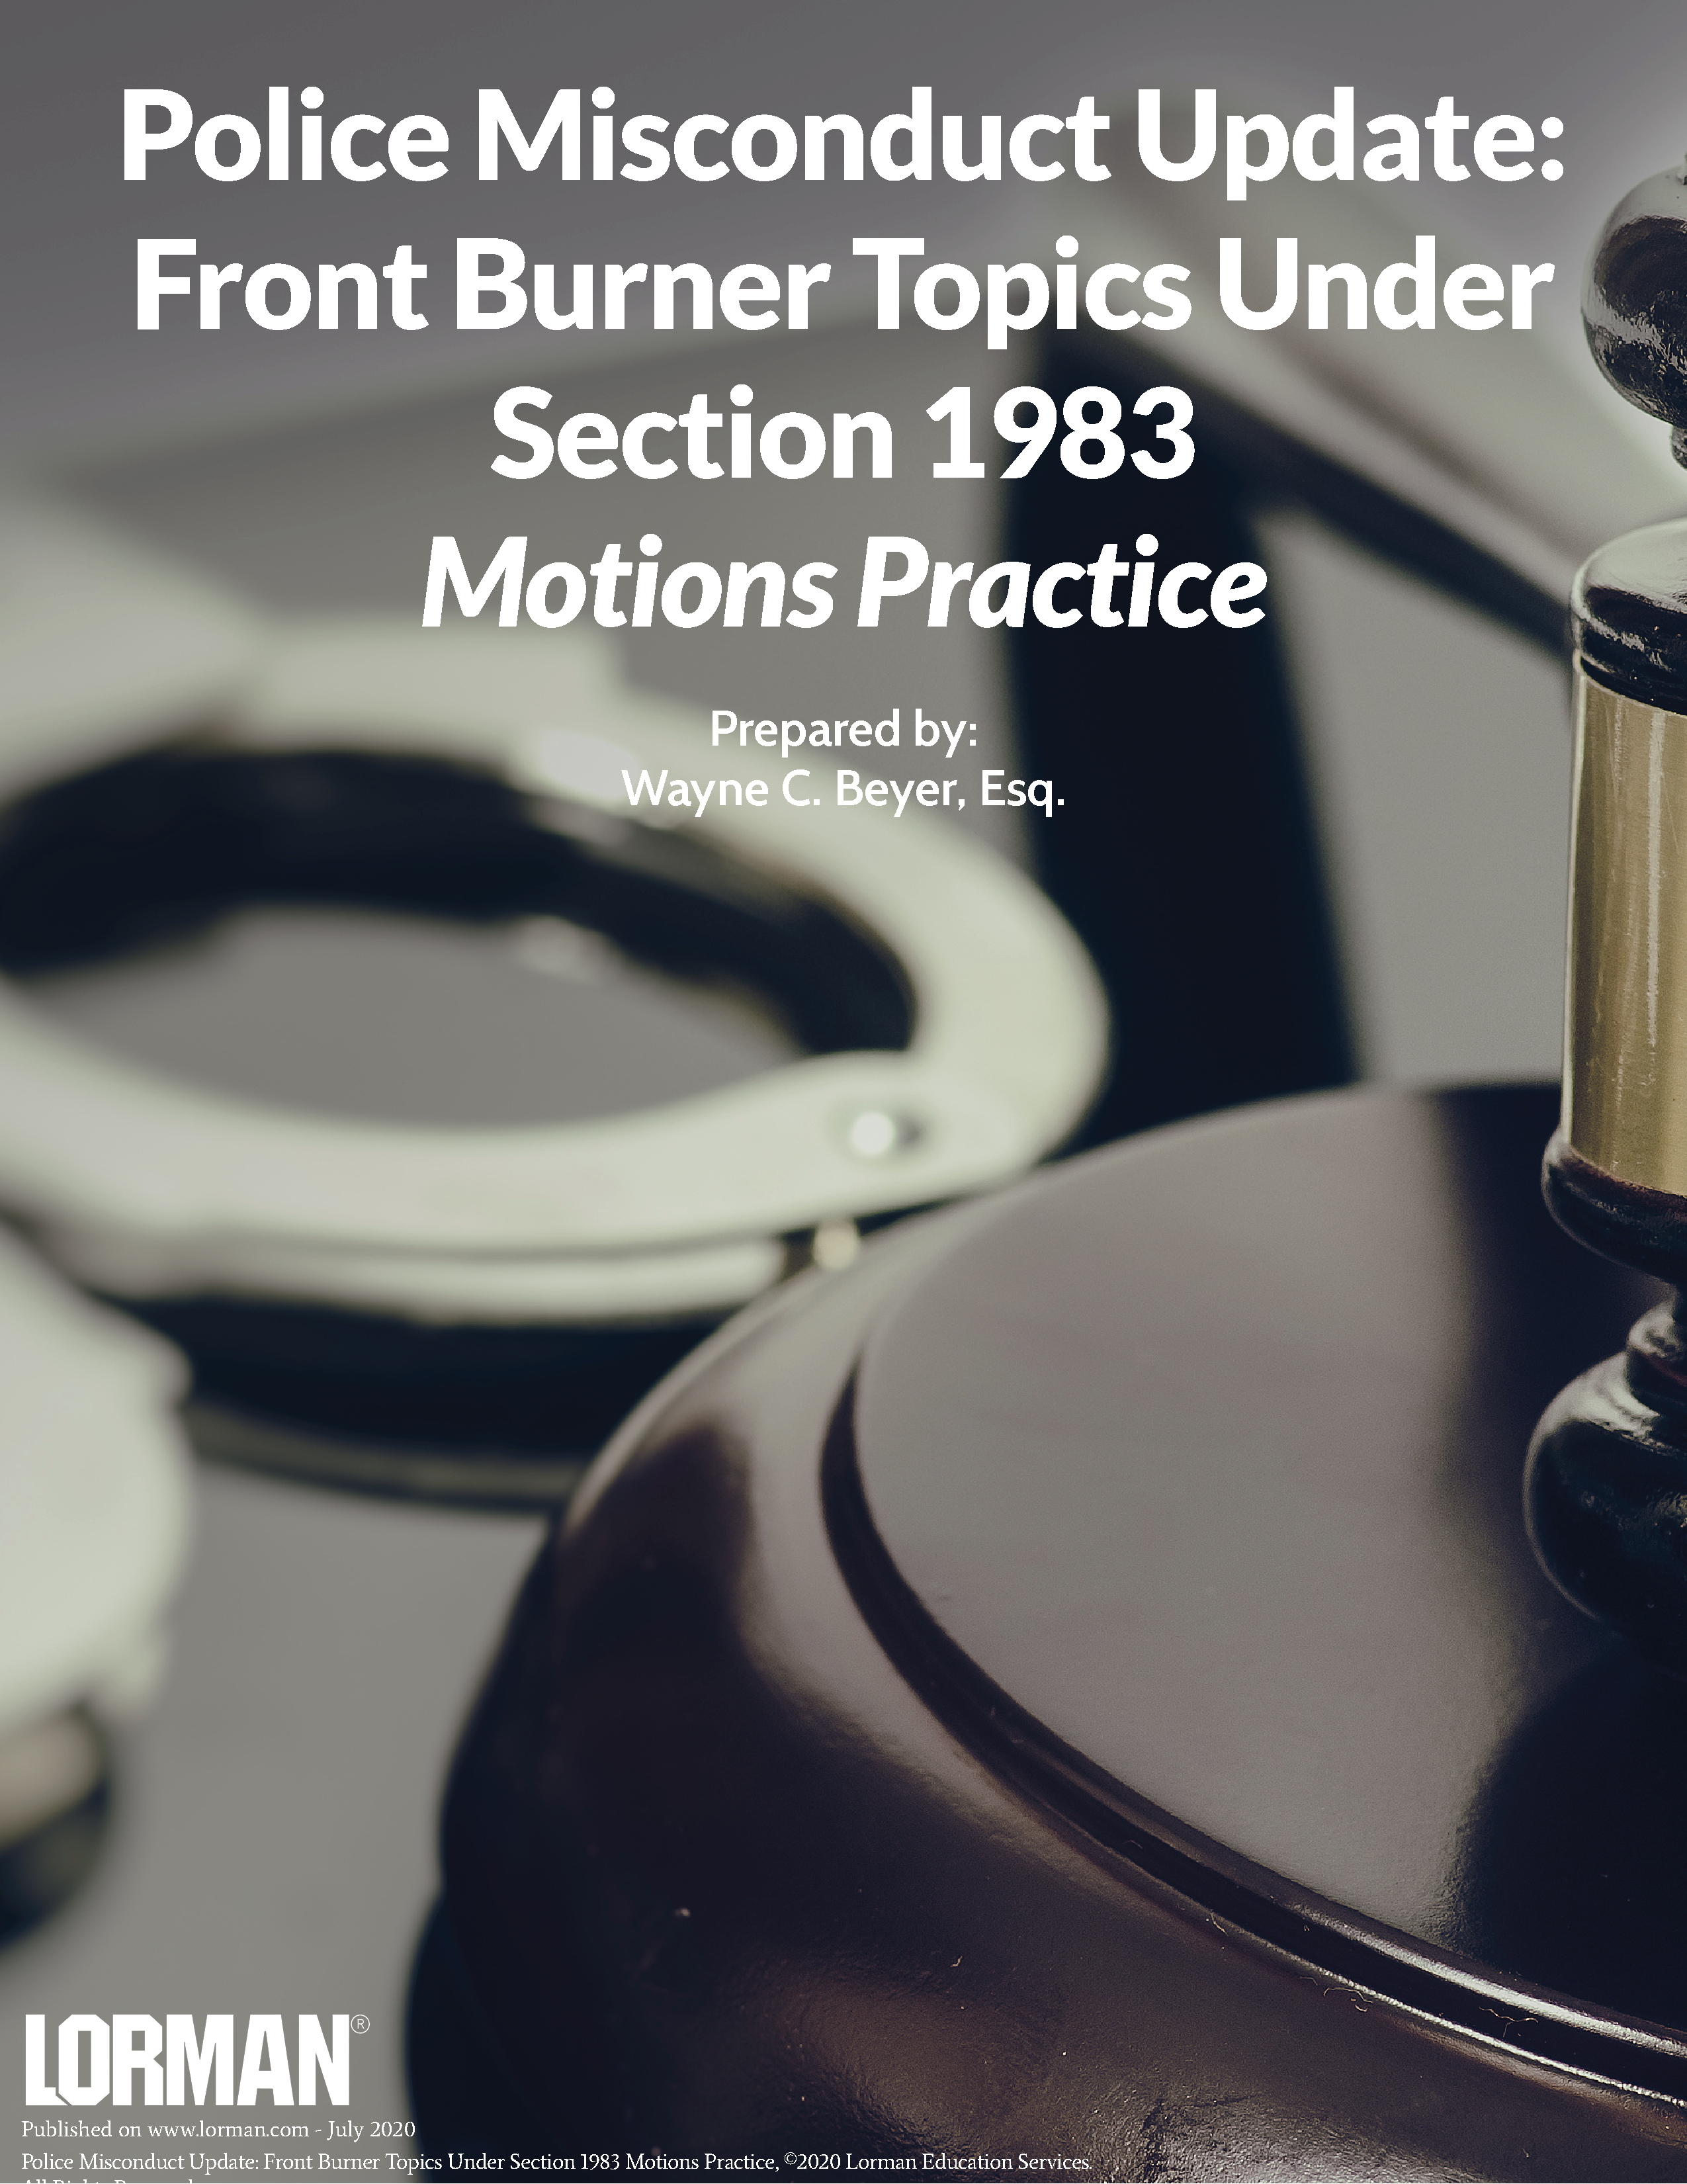 Police Misconduct Update: Front Burner Topics Under Section 1983 Motions Practice